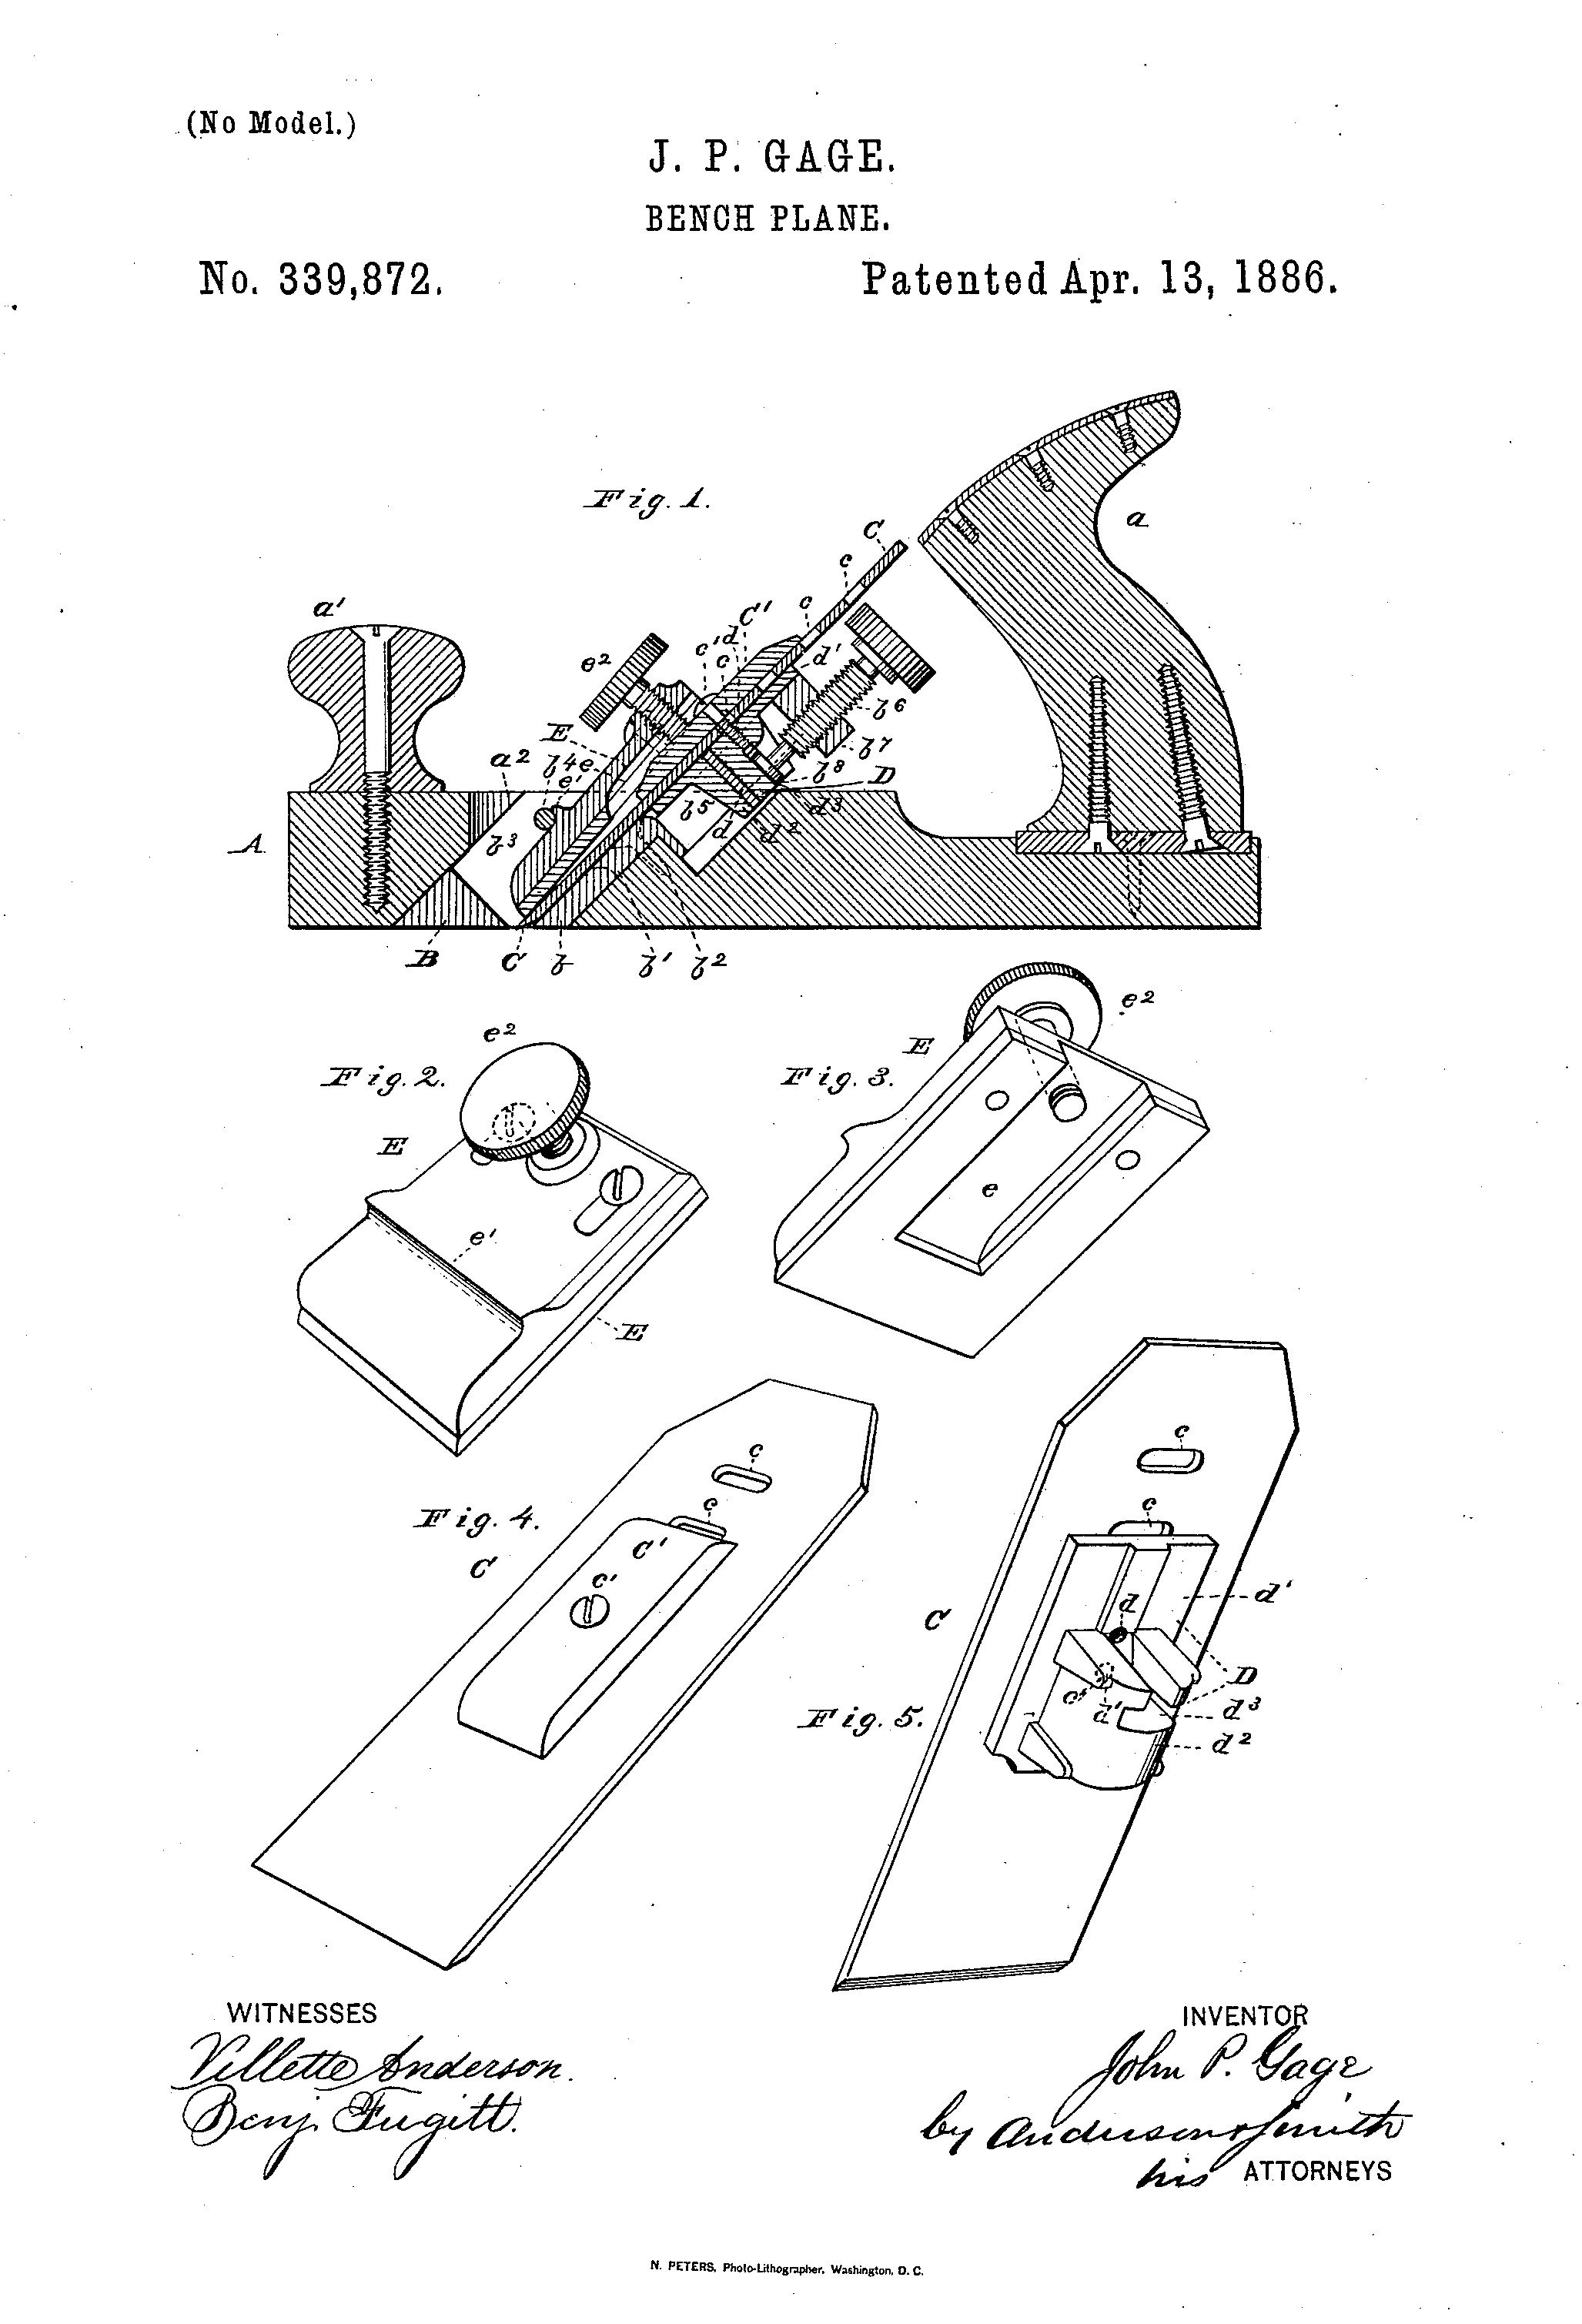 planer patent patent art pinterest tools Vintage Toasters eBay planer patent